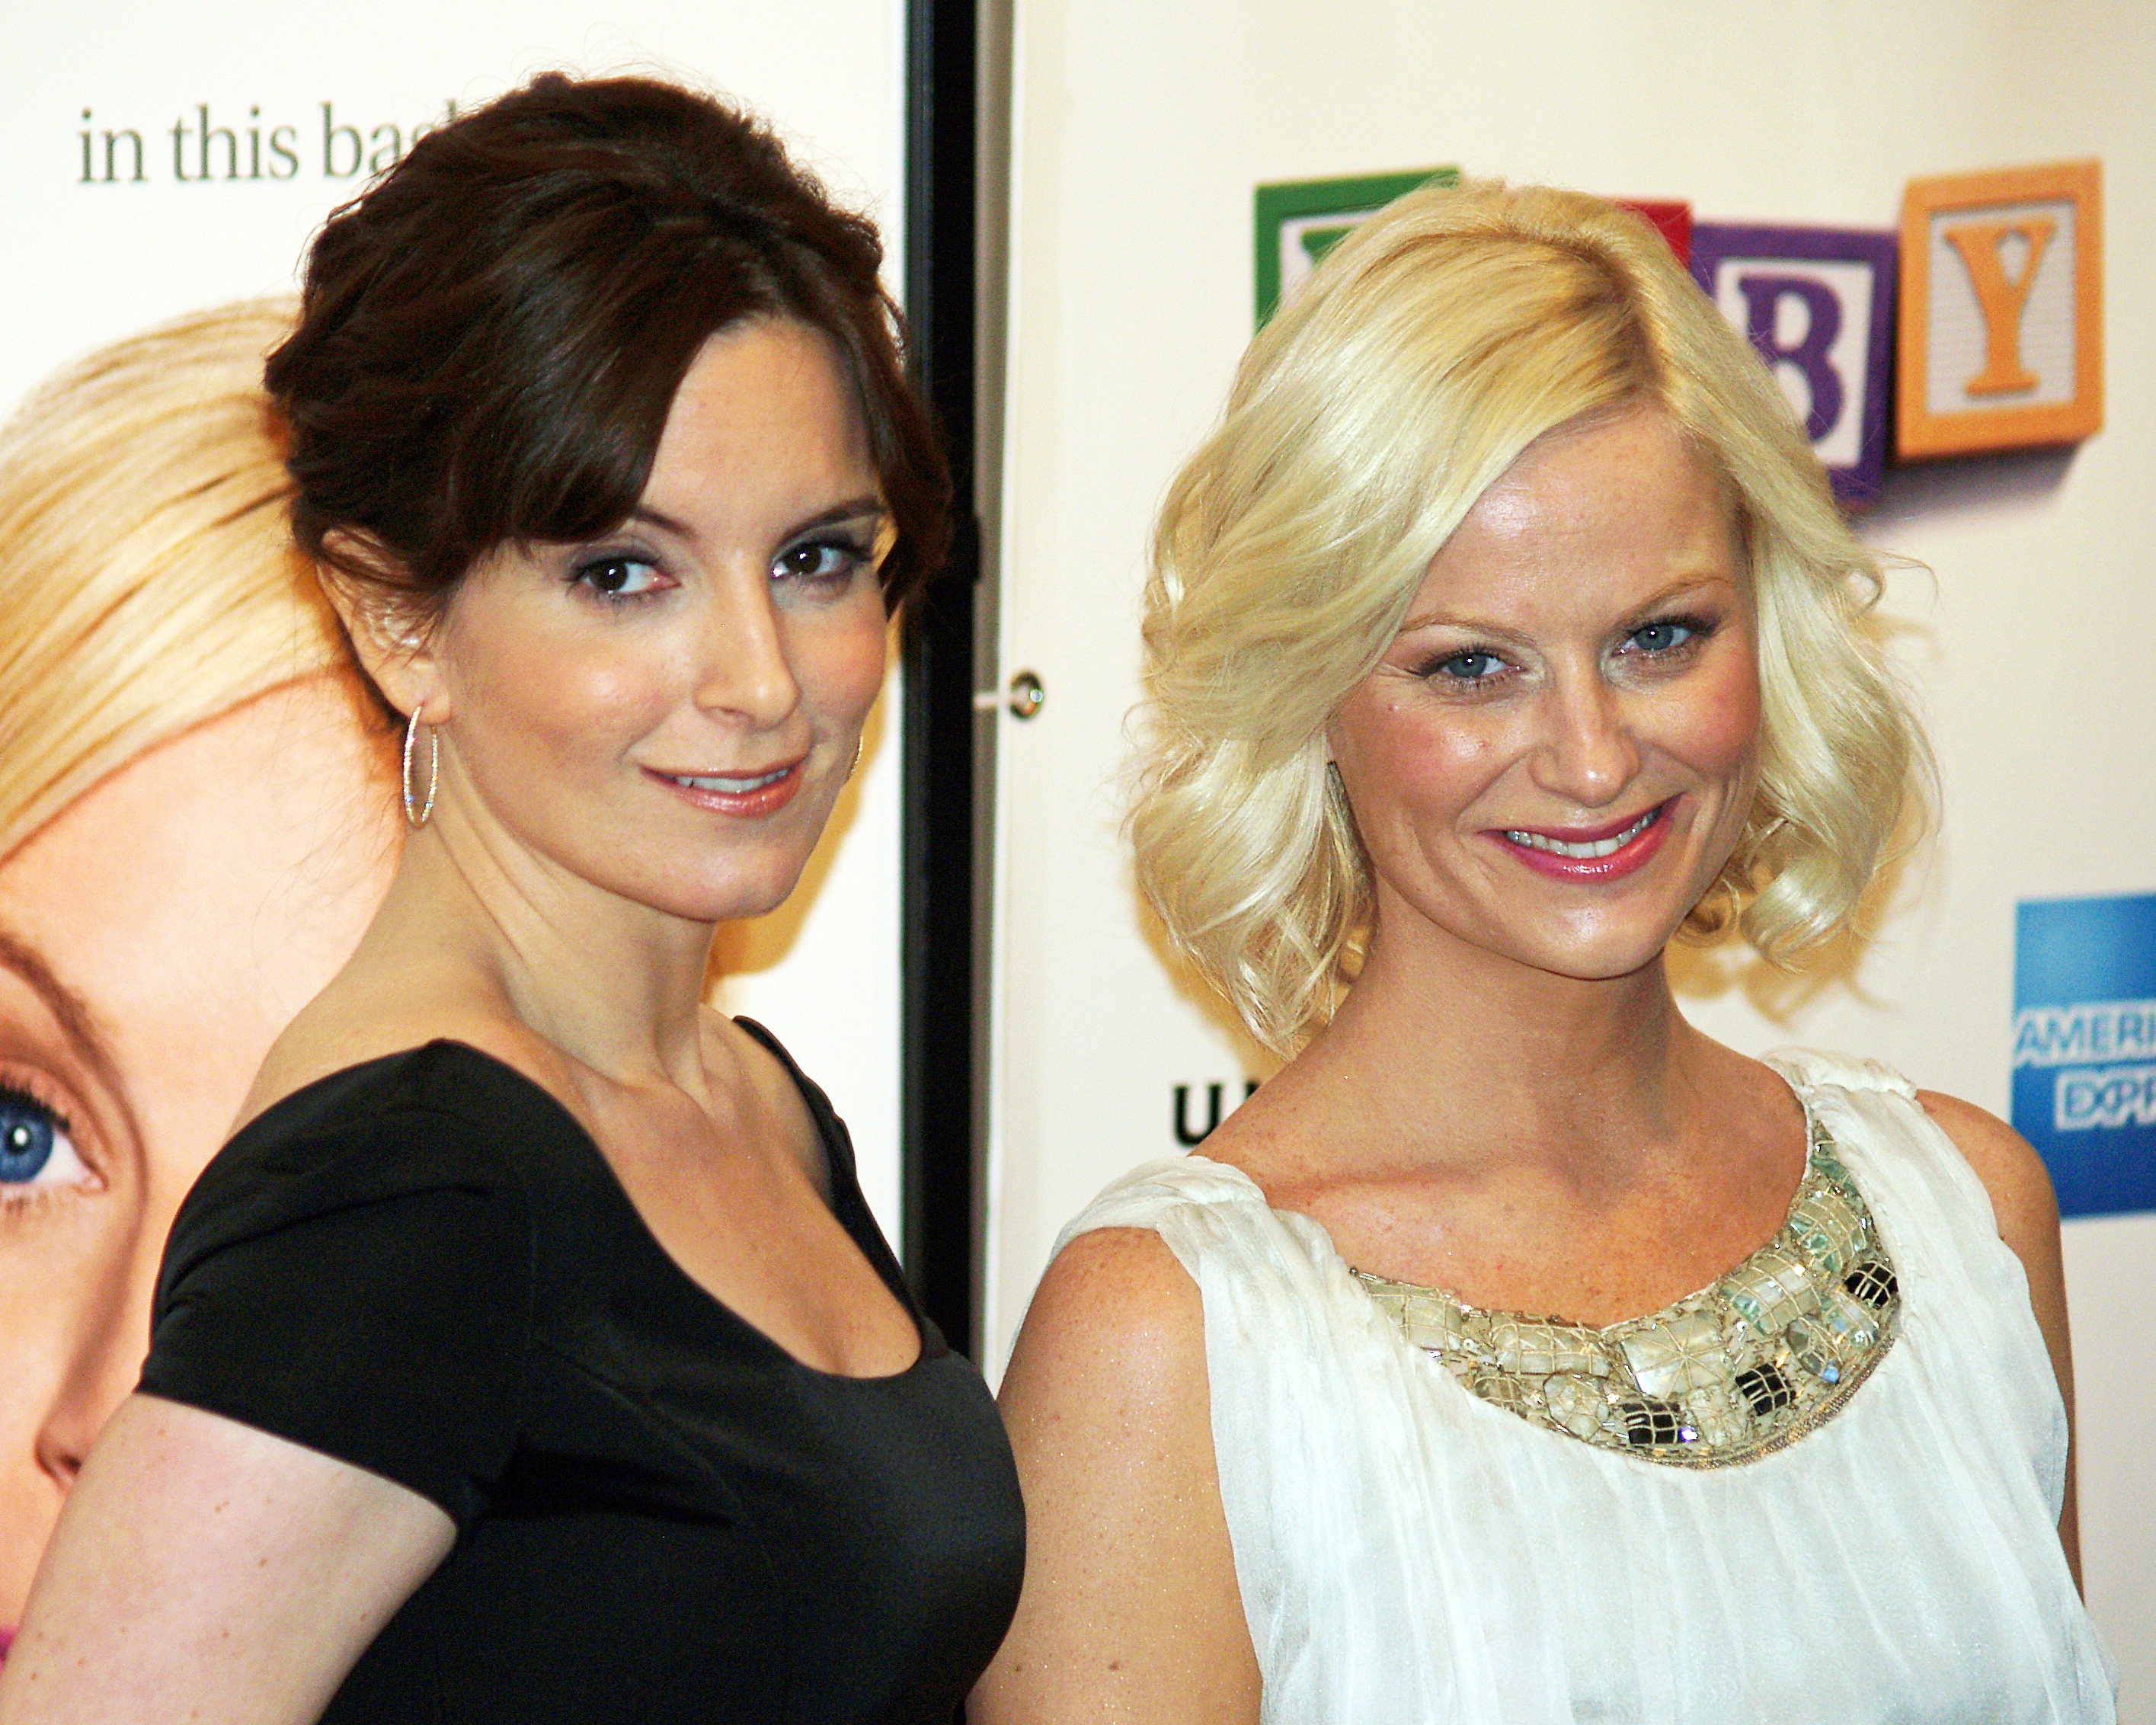 amy-poehler-and-tina-fey-by-david-shankbone